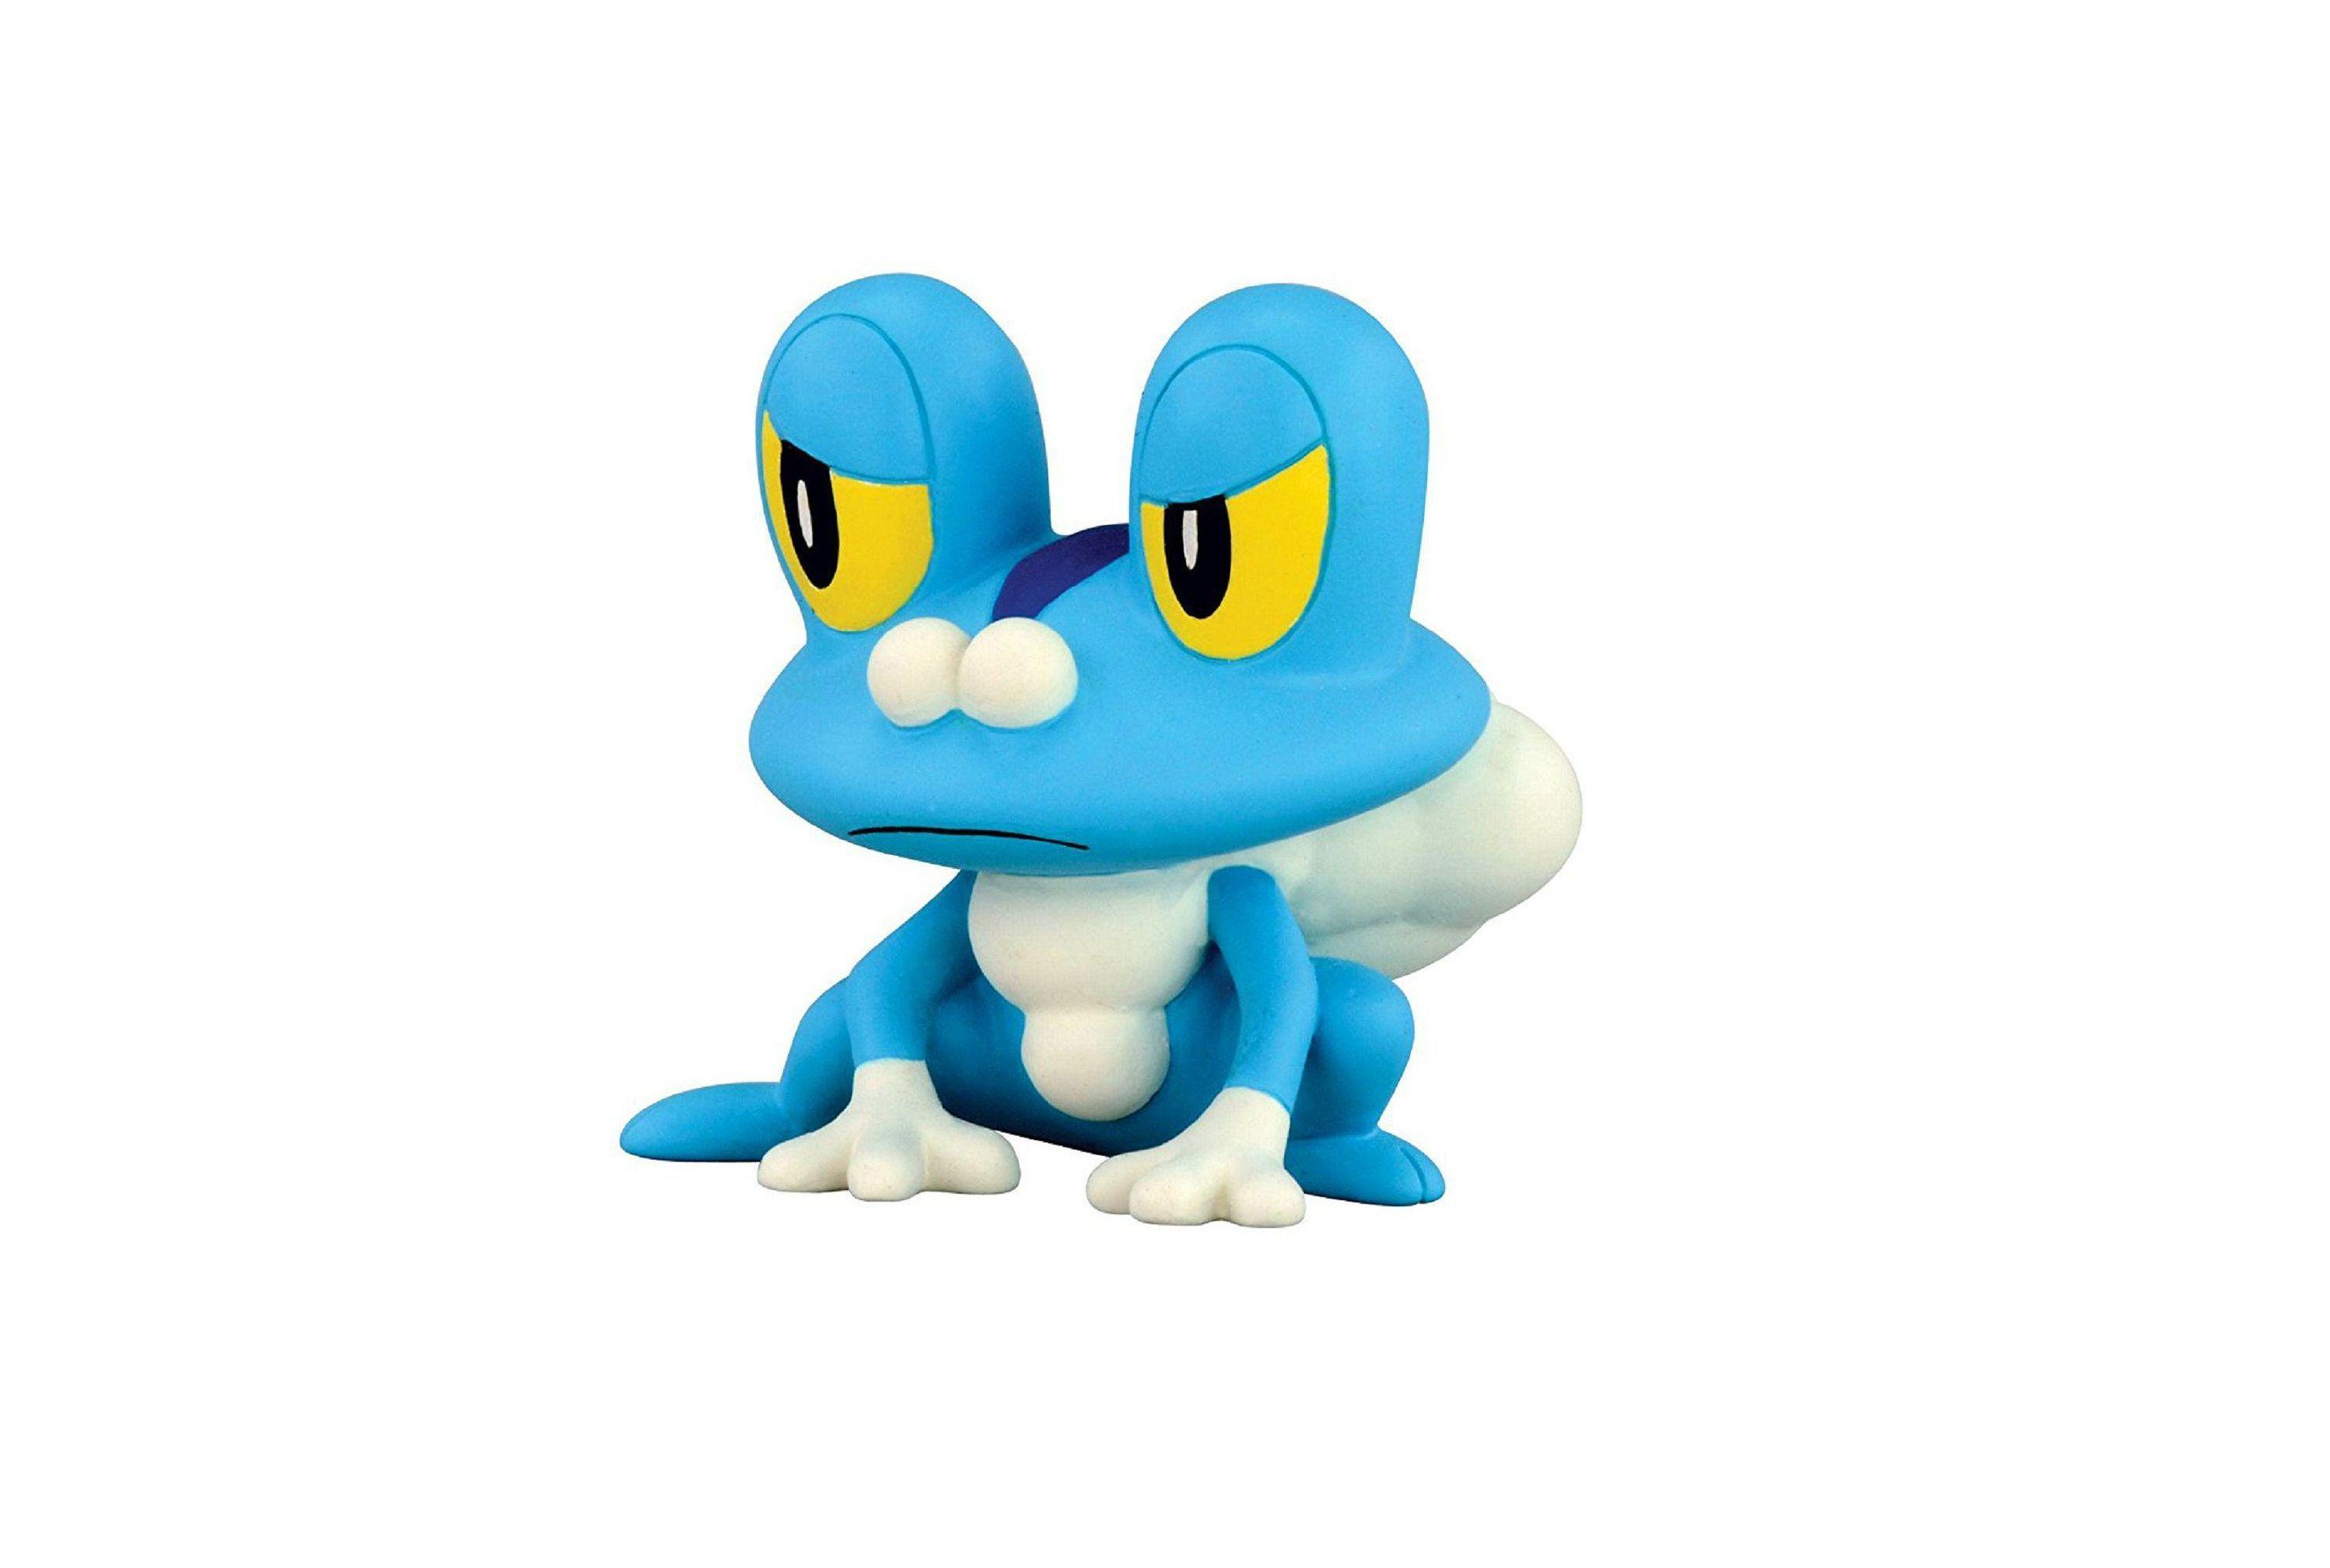 Froakie Wallpapers